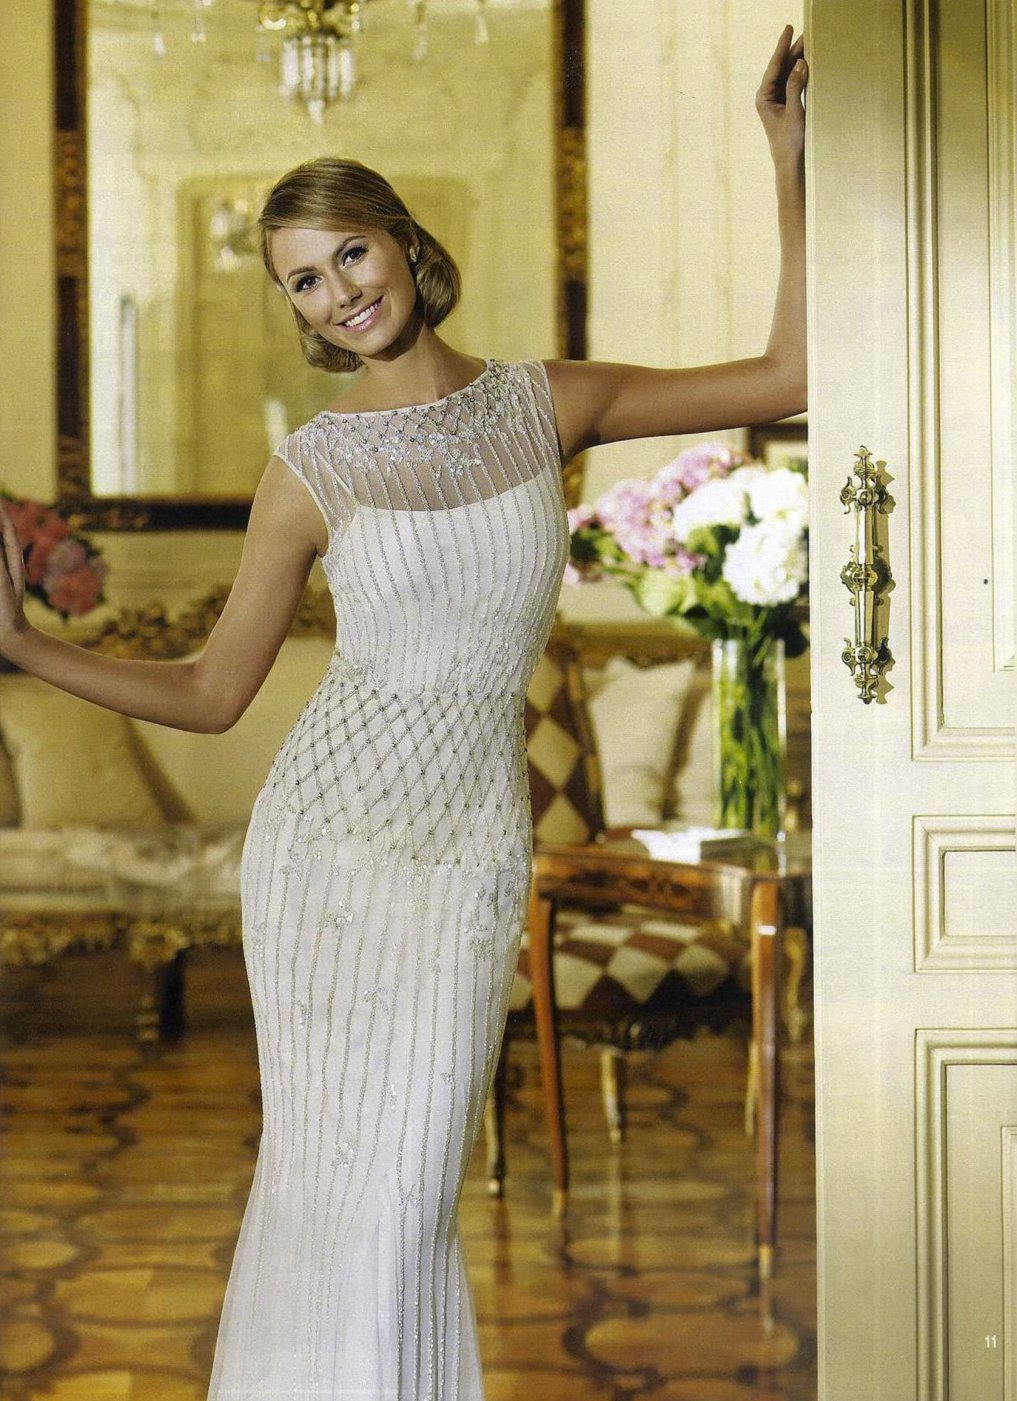 Stacy-keibler-george-clooney-getting-married-wears-pronovias-bridal-gown.full